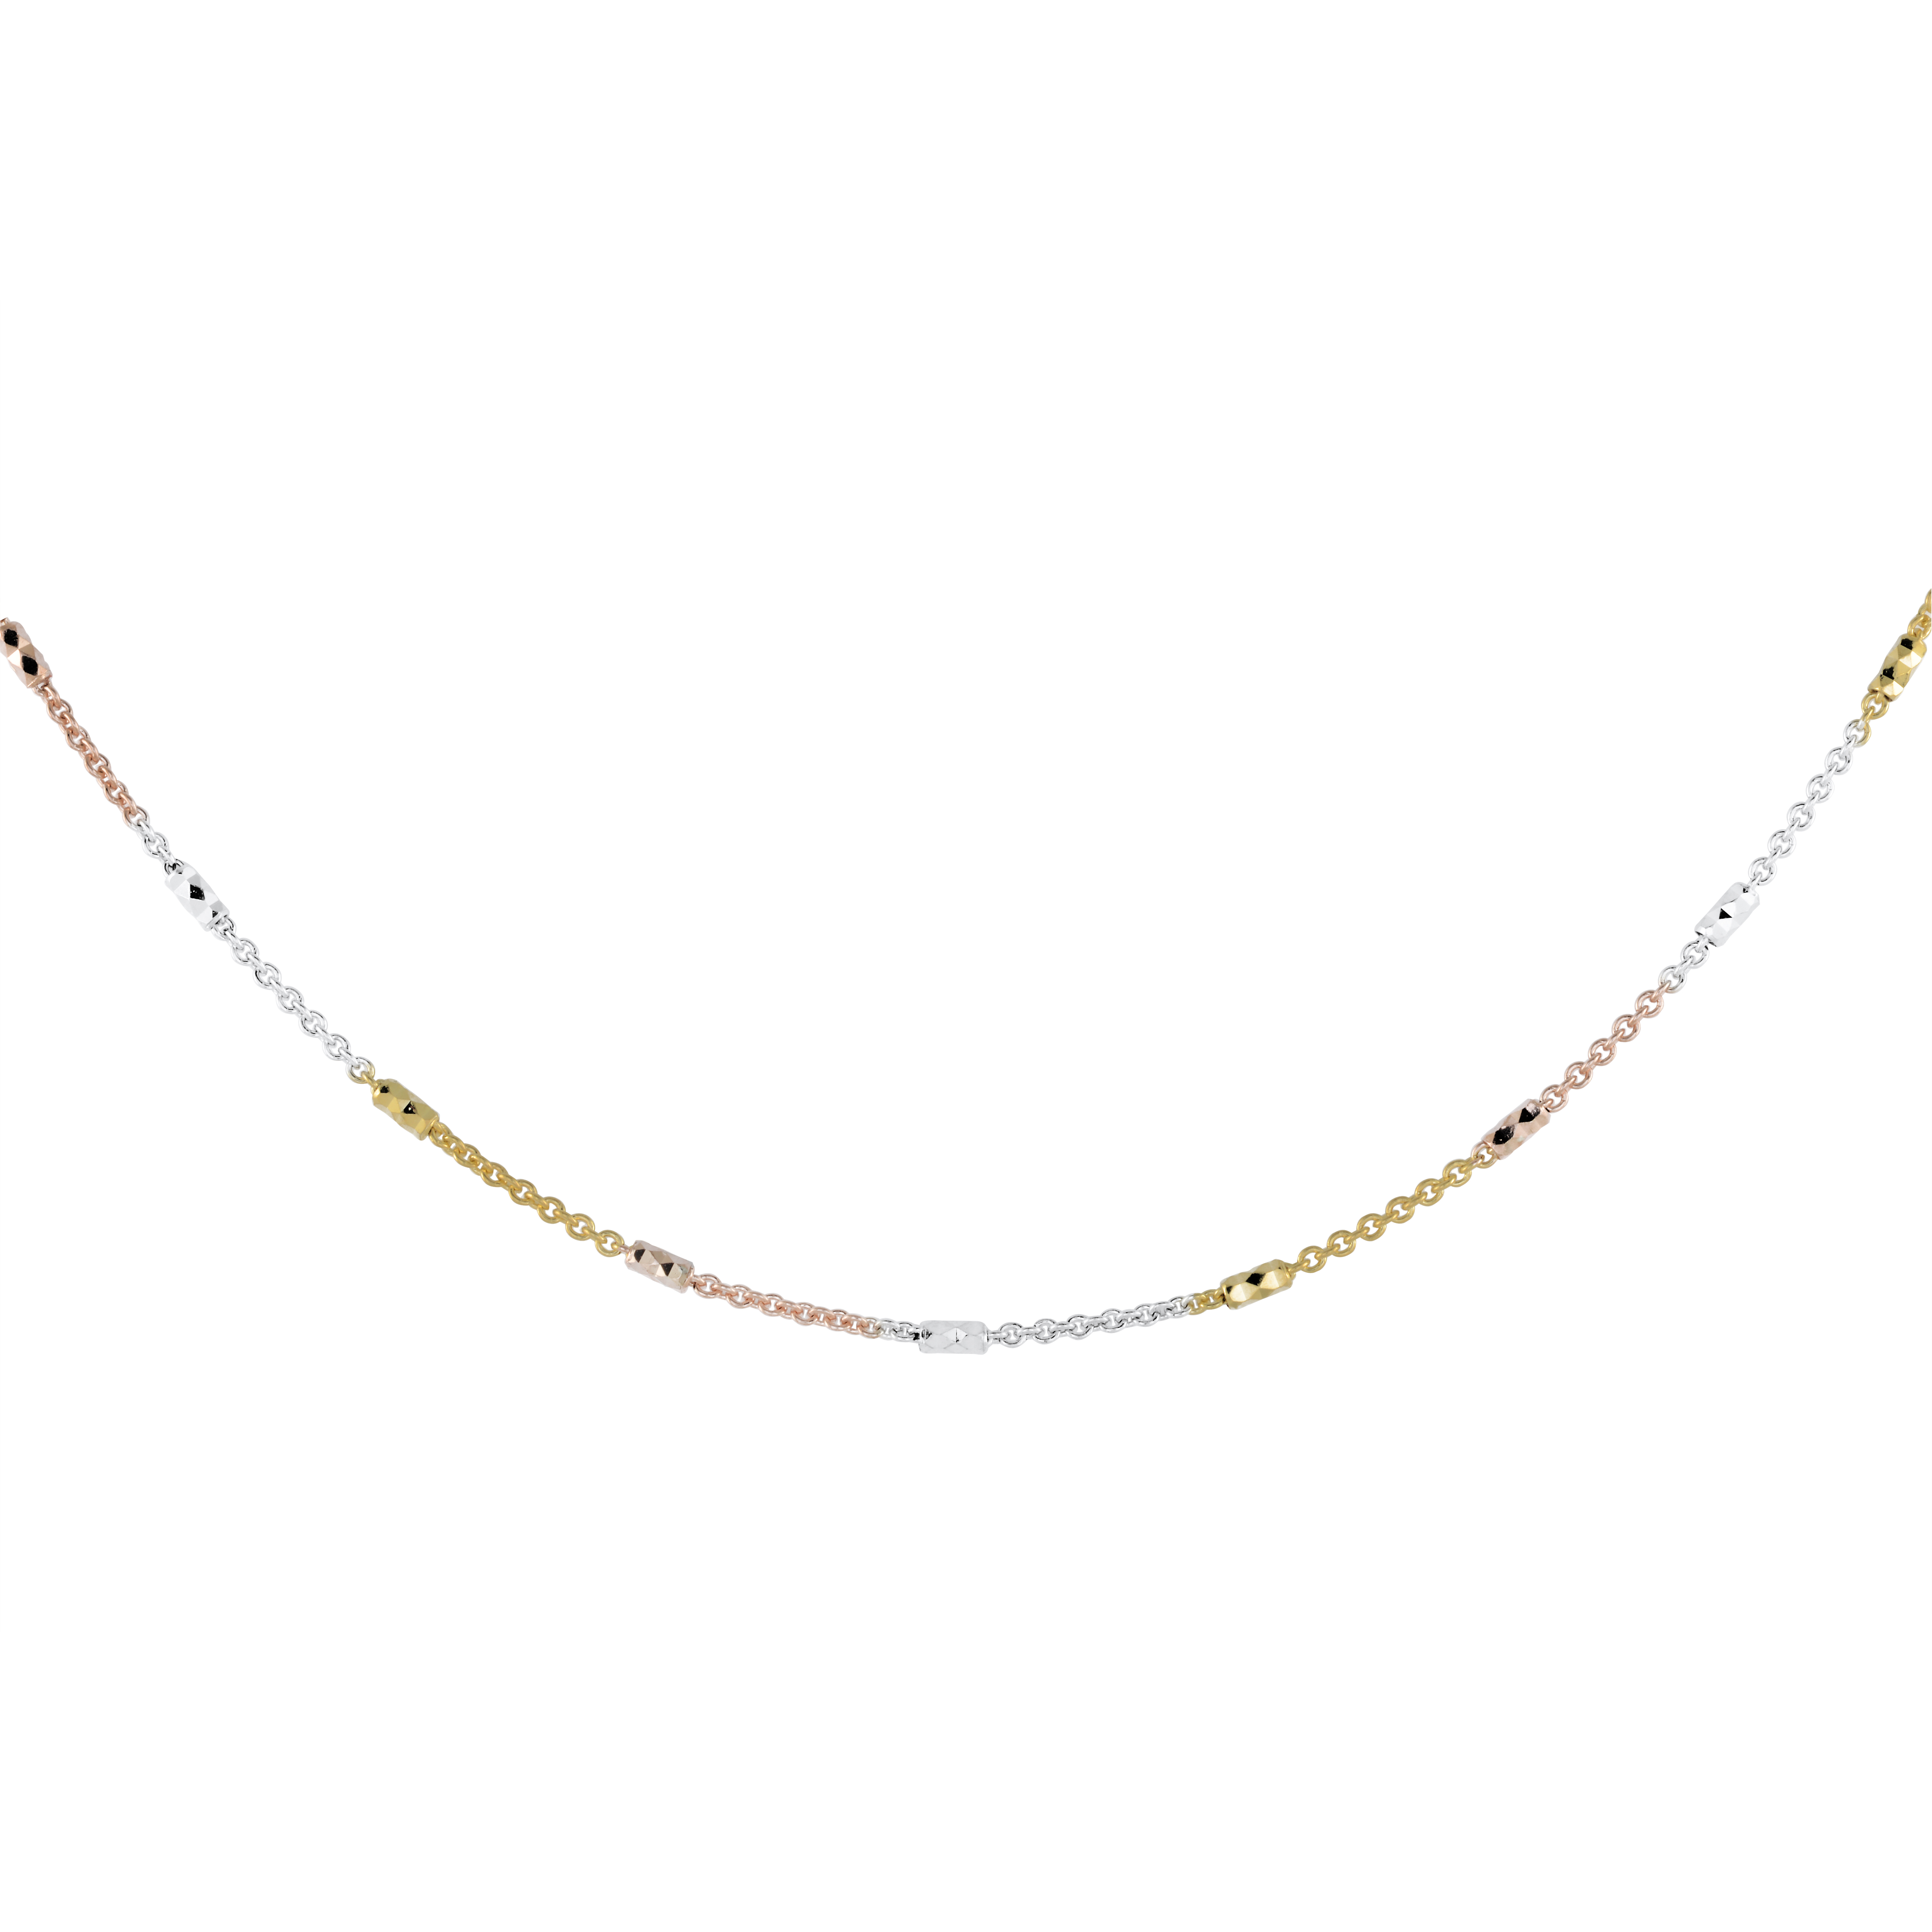 18'' Chain with intervals - 10K 3-tone Gold